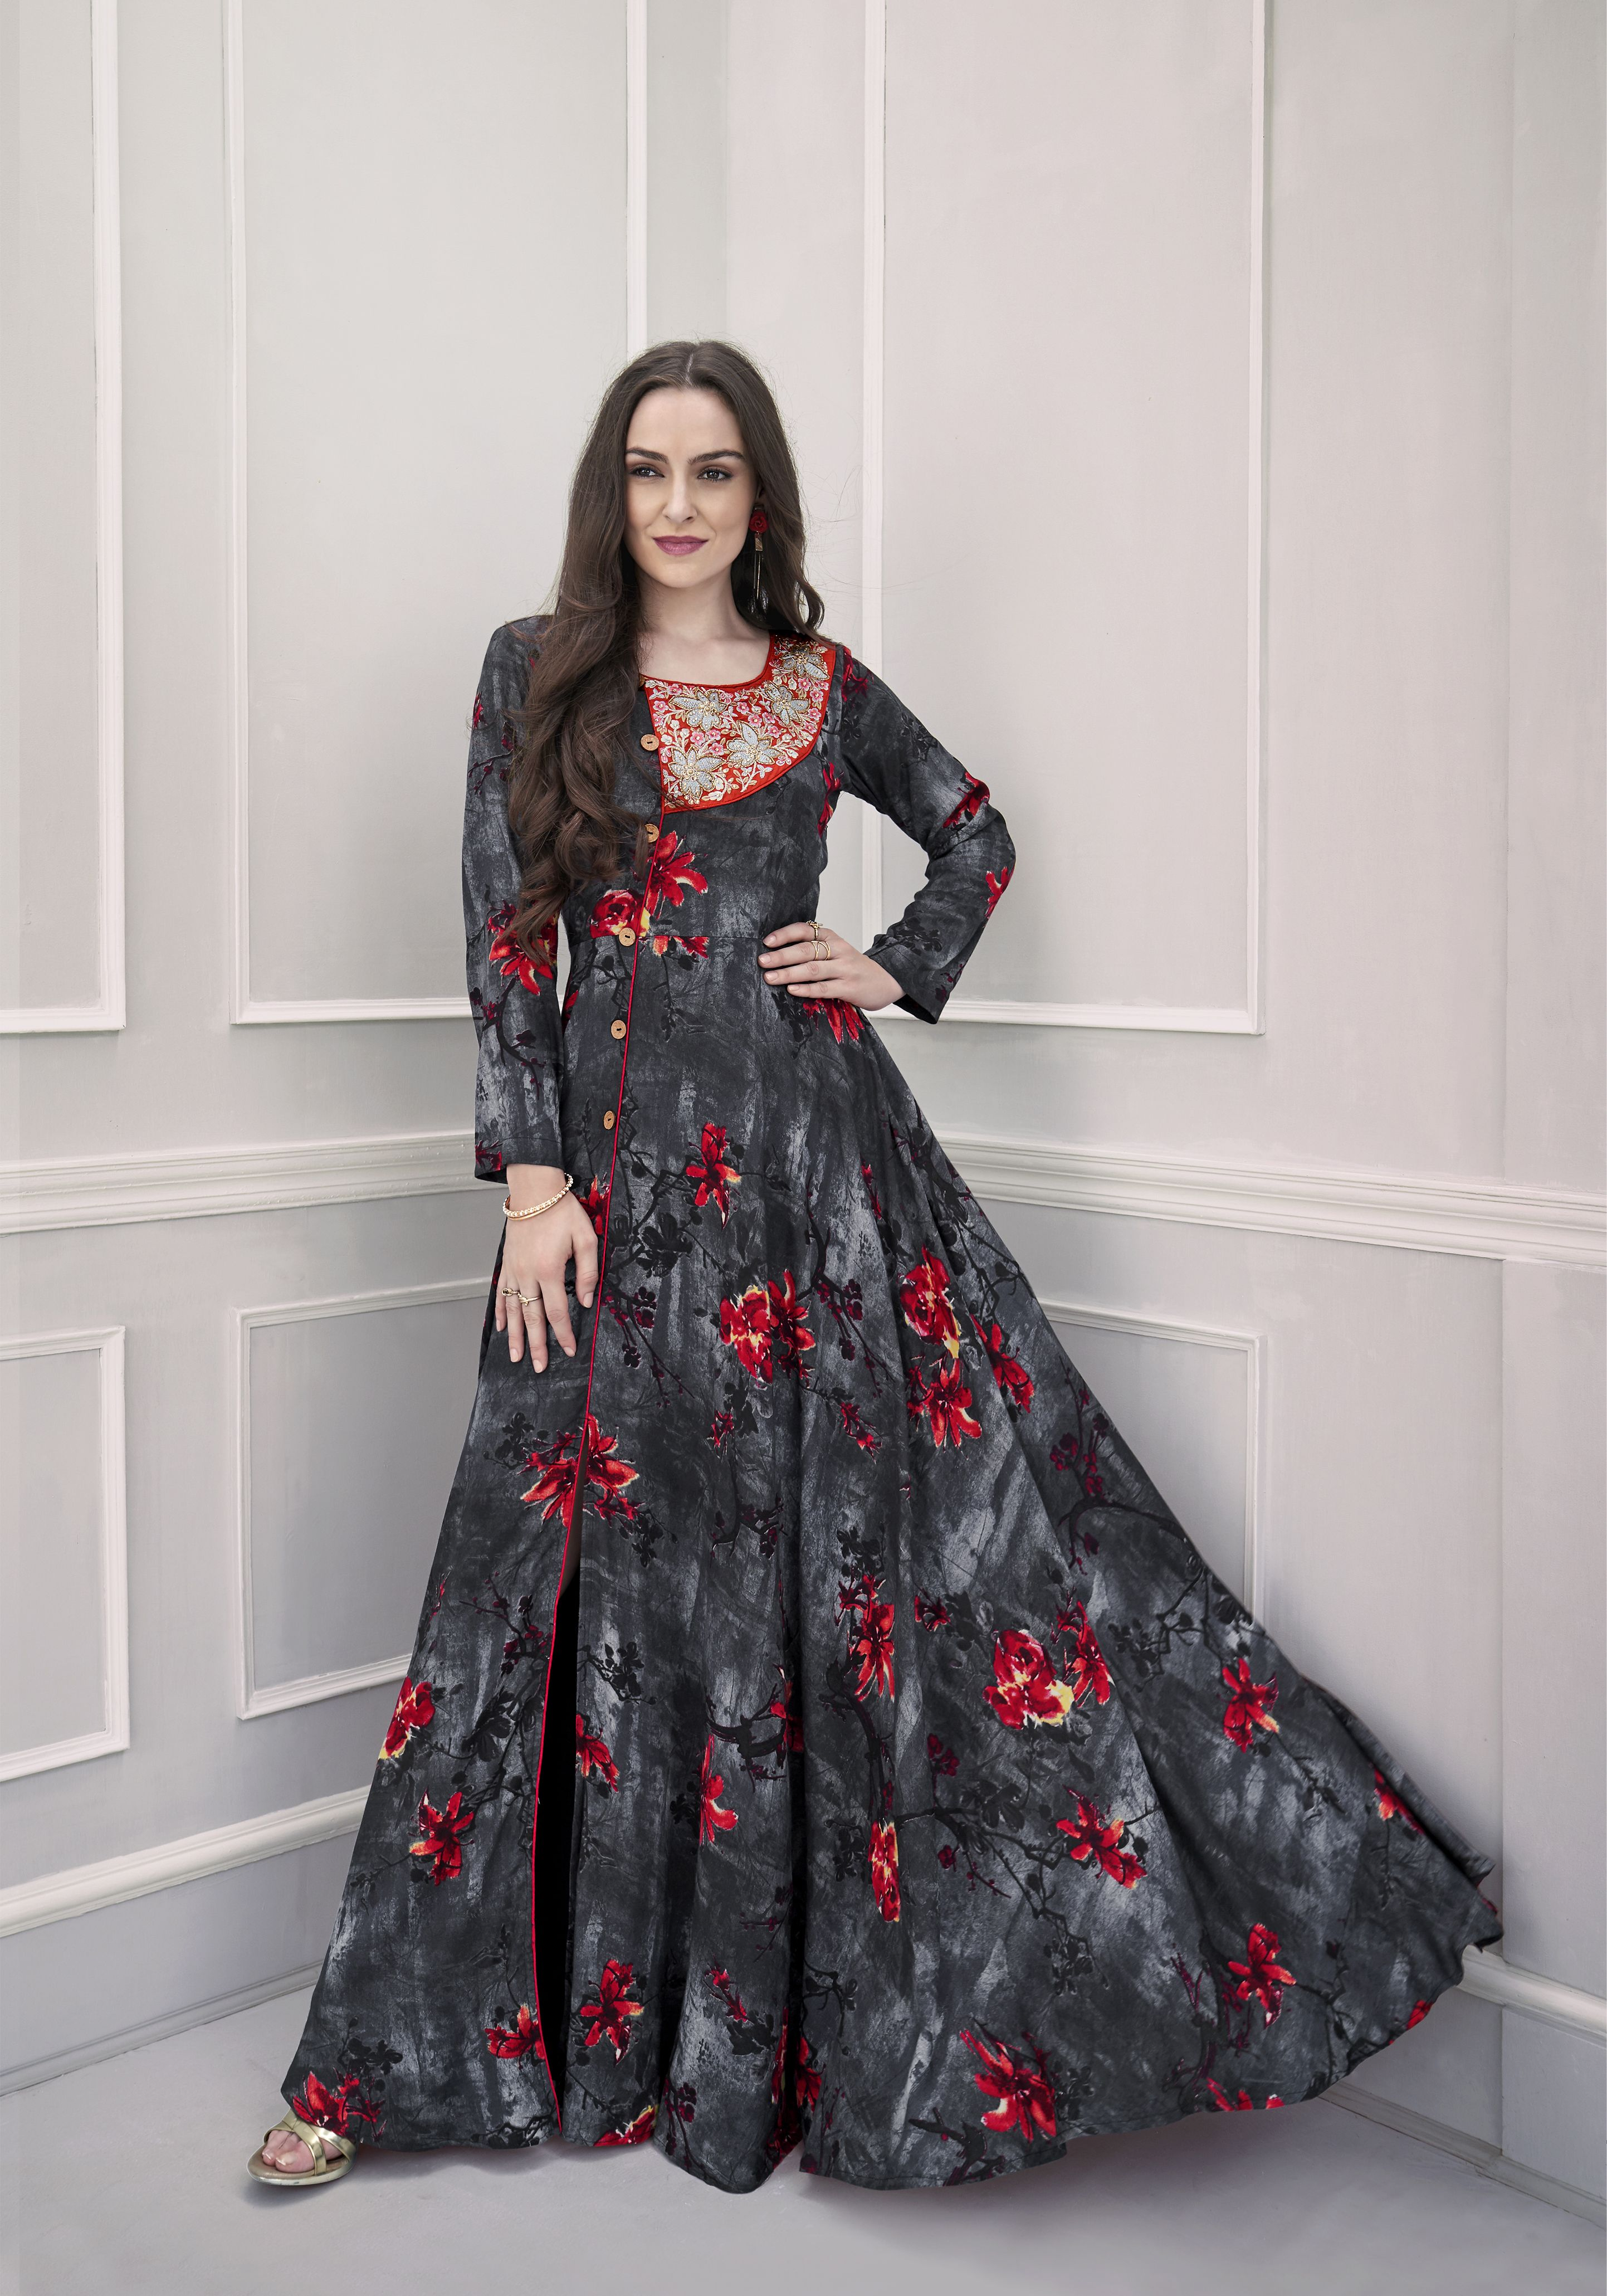 cf48d46586 Shop Heavy embroidery with handwork black rayon printed long maxi dress  Online - VOGUE AND YOU